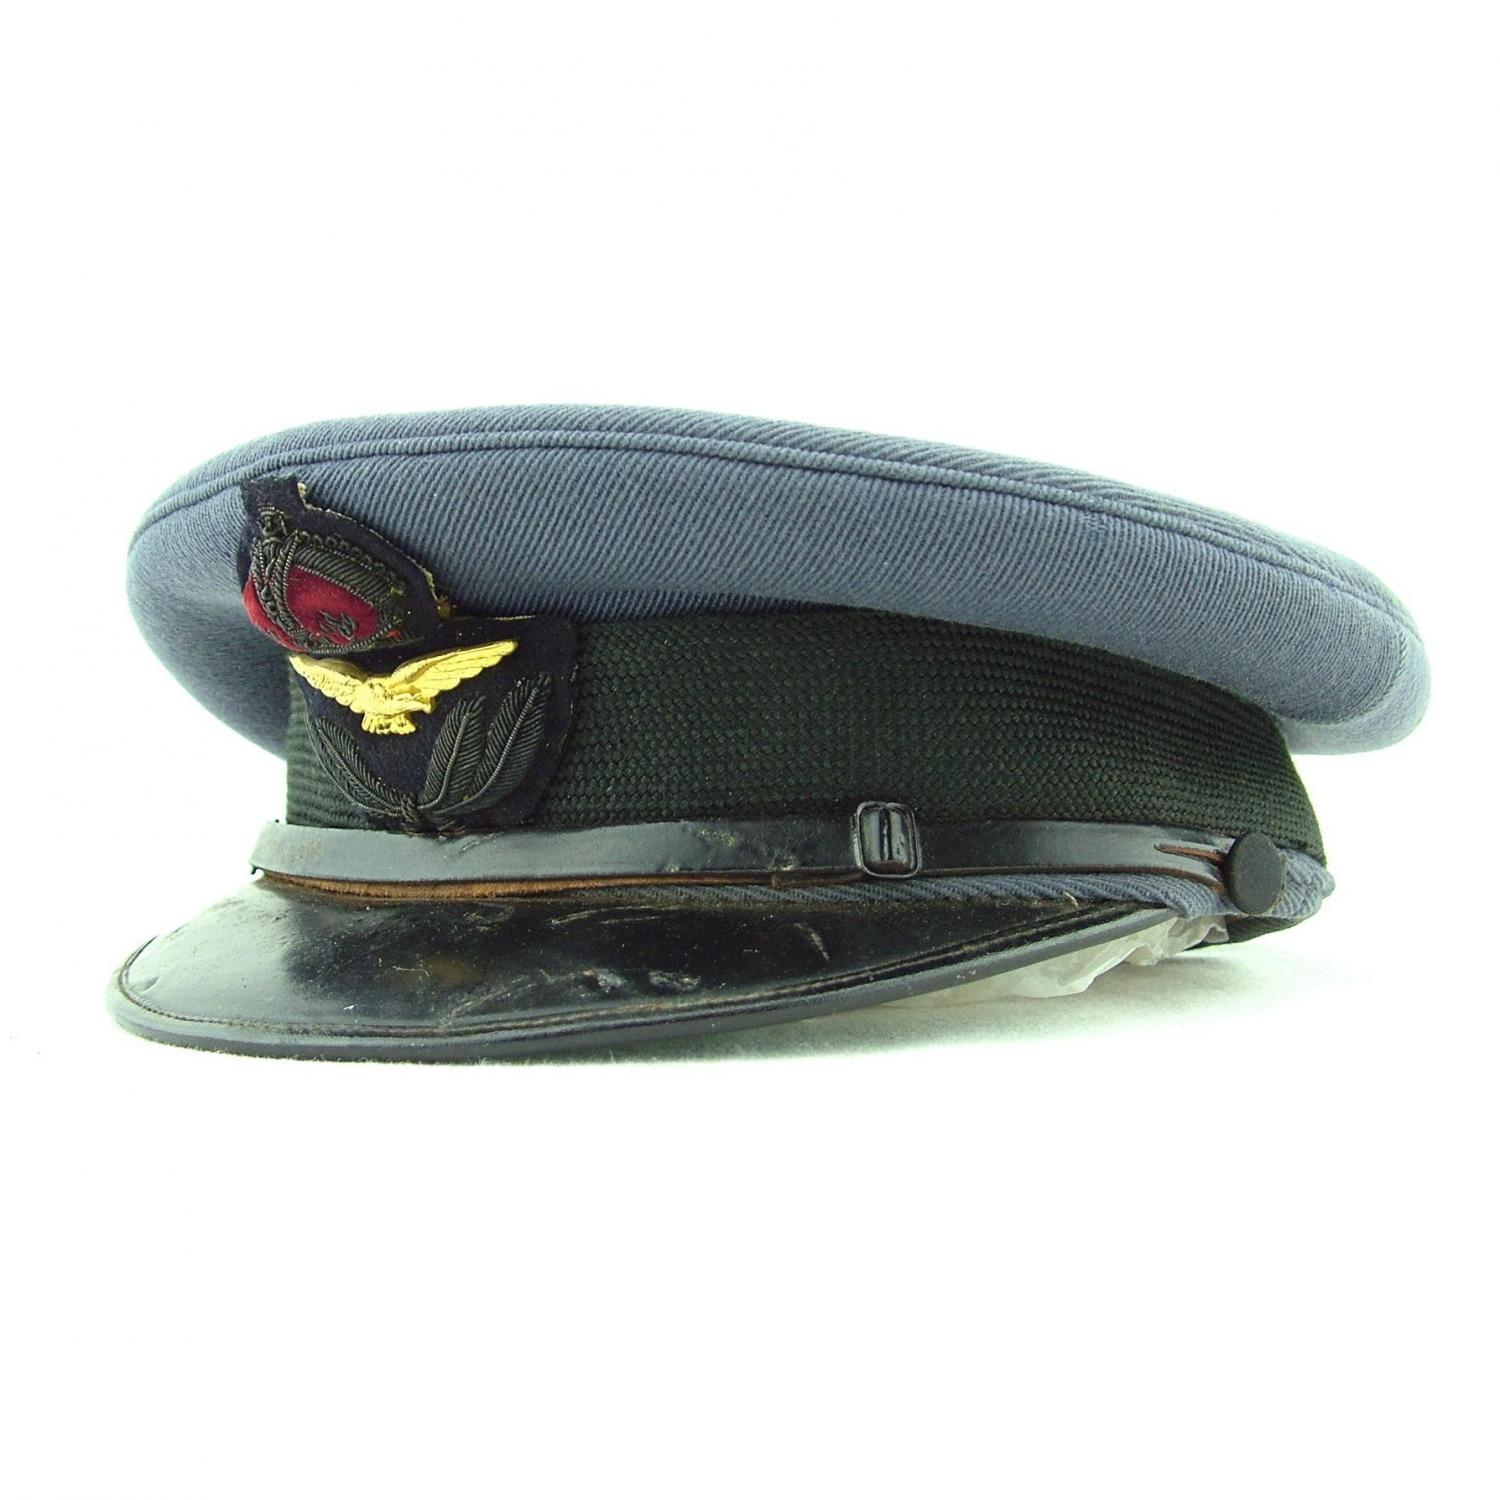 RAF officers SD cap, 1918-19 pattern